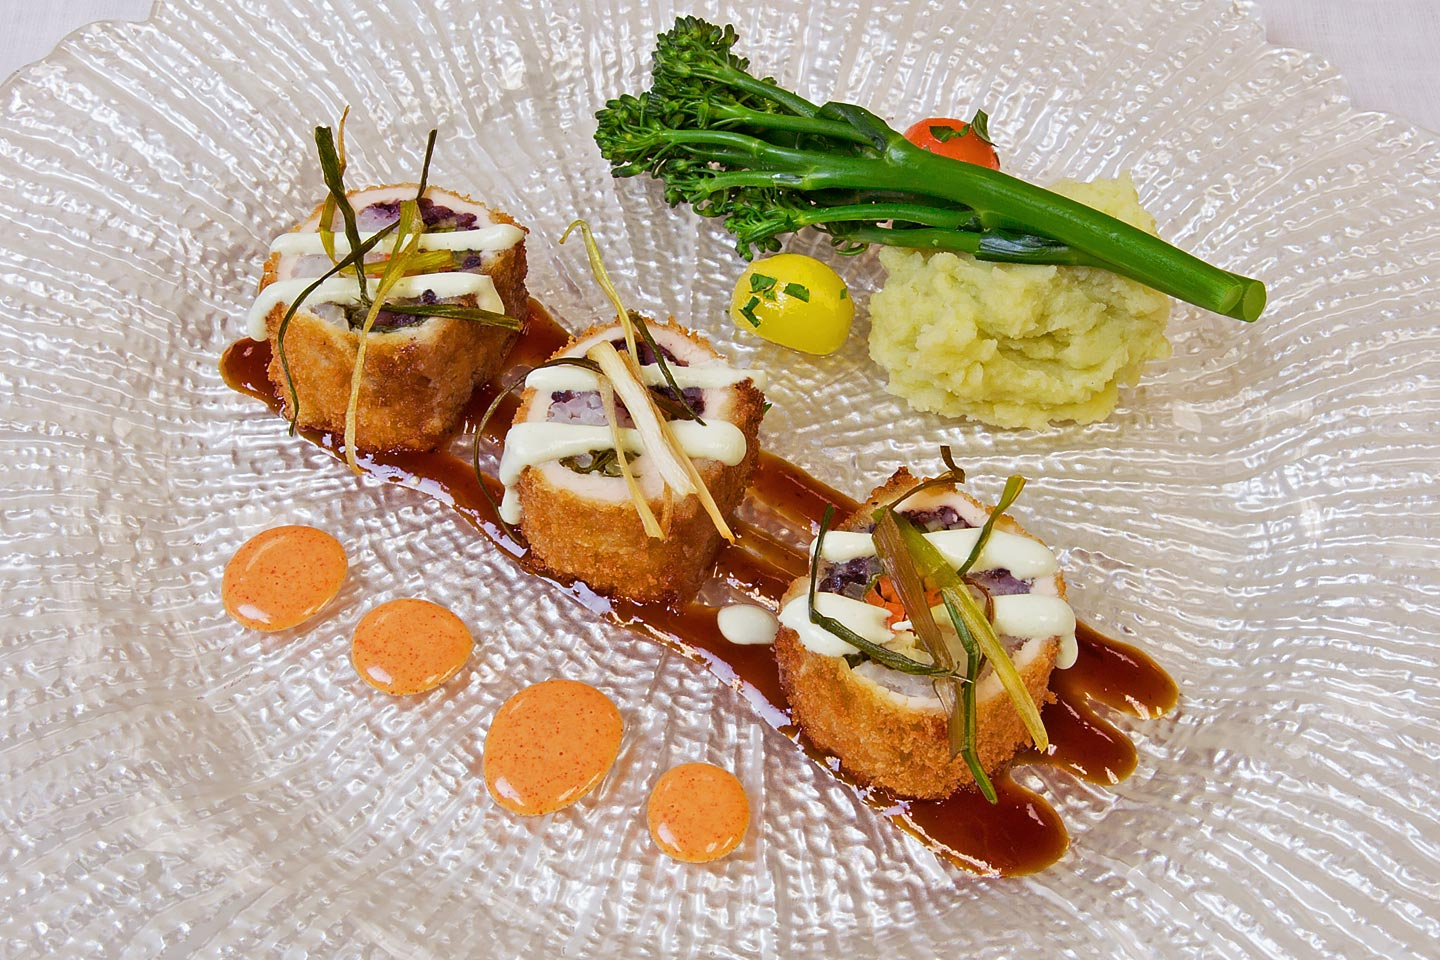 an awesome chicken sushi entree with broccolini atop mashed potatoes, photographed by Jacob Rosenfeld